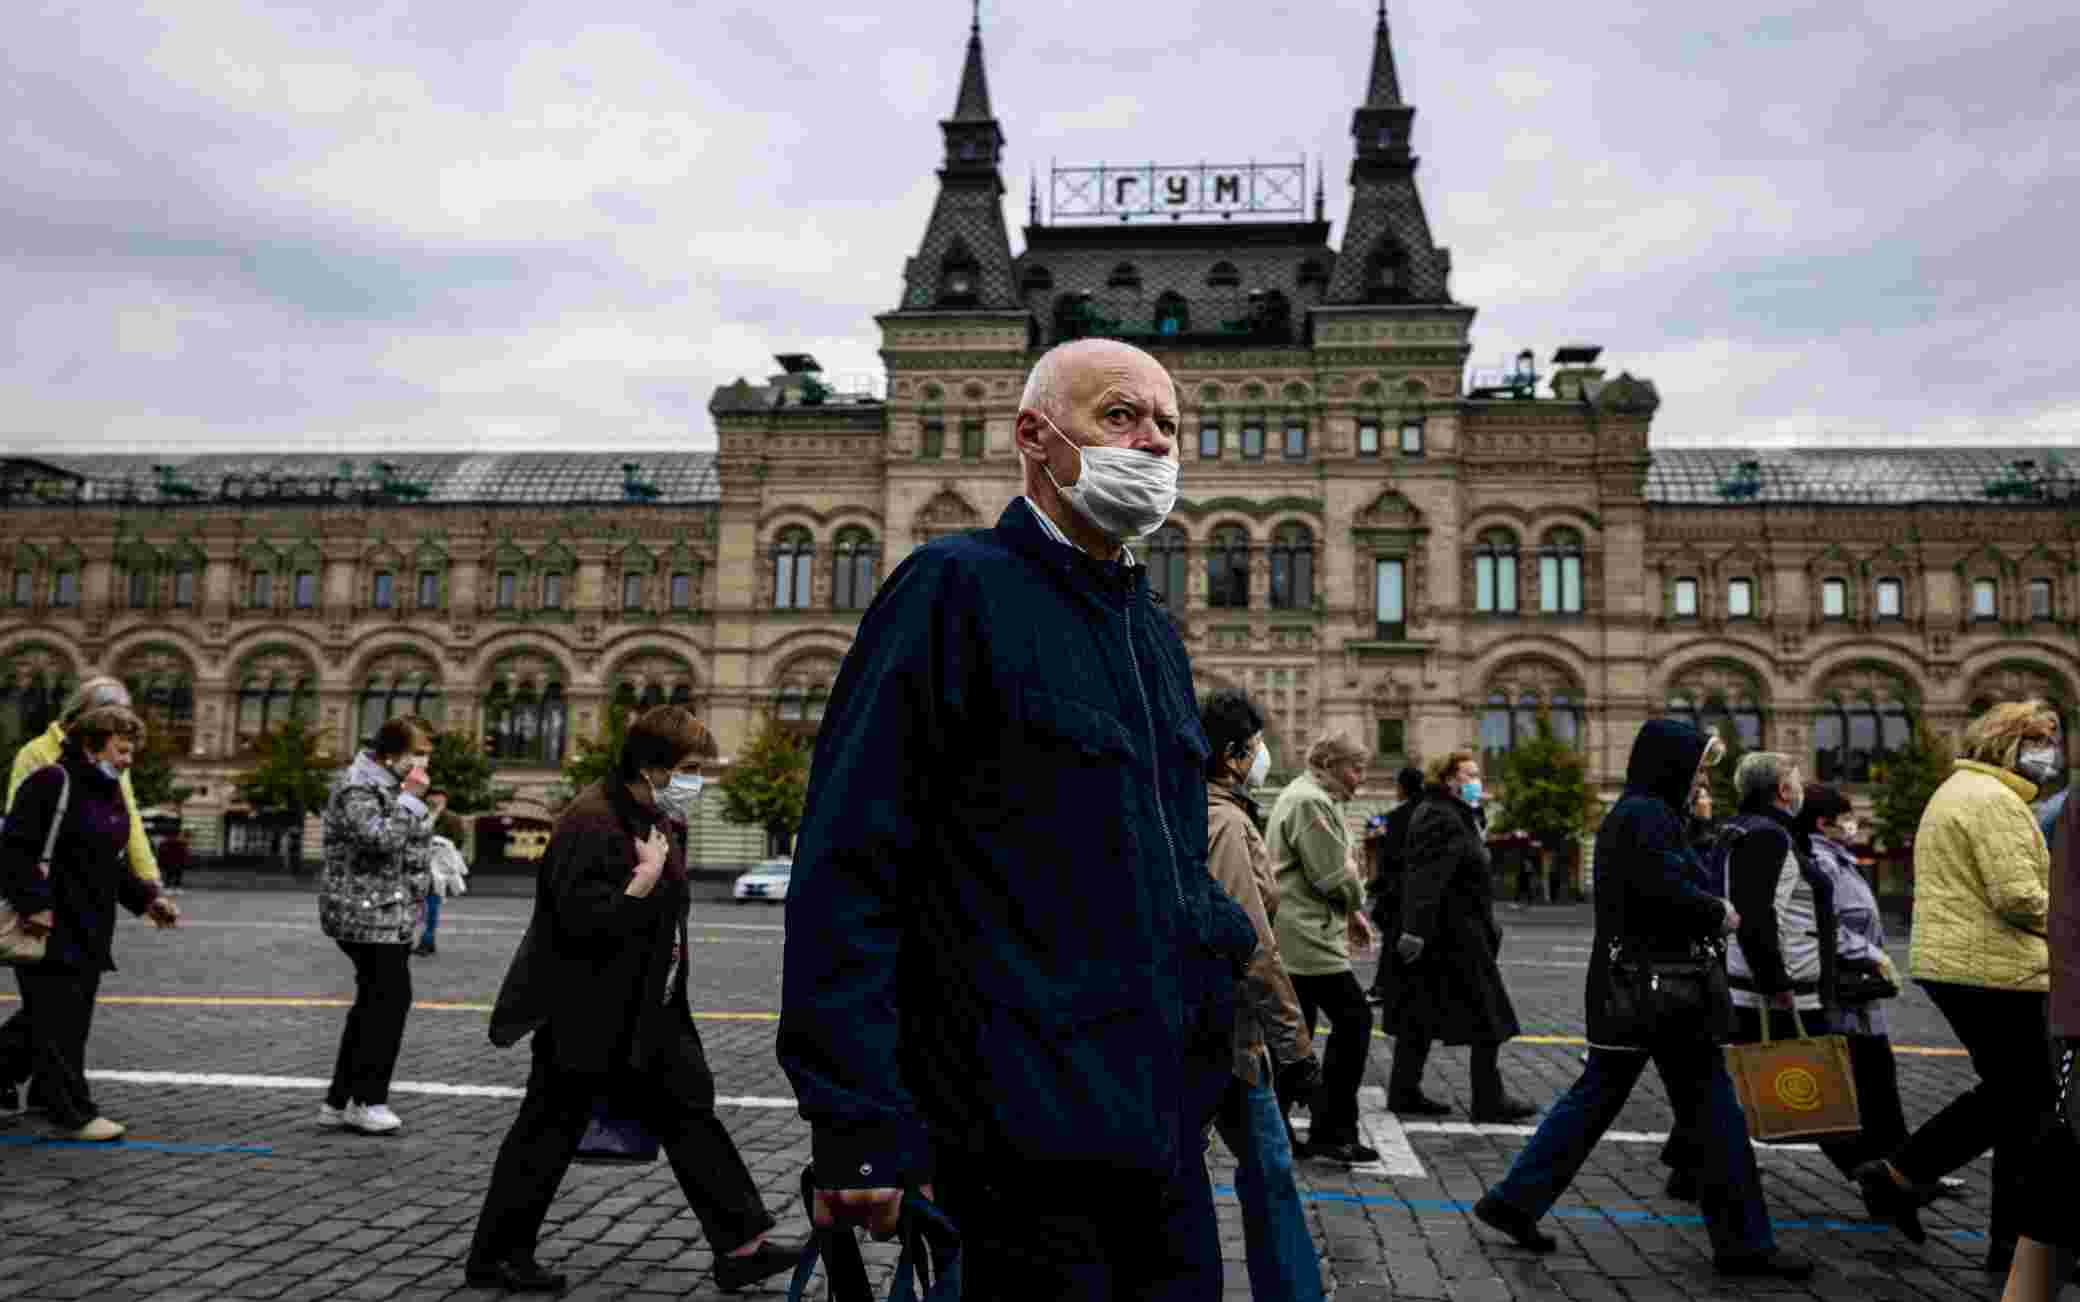 A man wearing a face mask to protect against the coronavirus disease walks on Red Square in front of the GUM department store in central Moscow on October 7, 2020. (Photo by Dimitar DILKOFF / AFP) (Photo by DIMITAR DILKOFF/AFP via Getty Images)